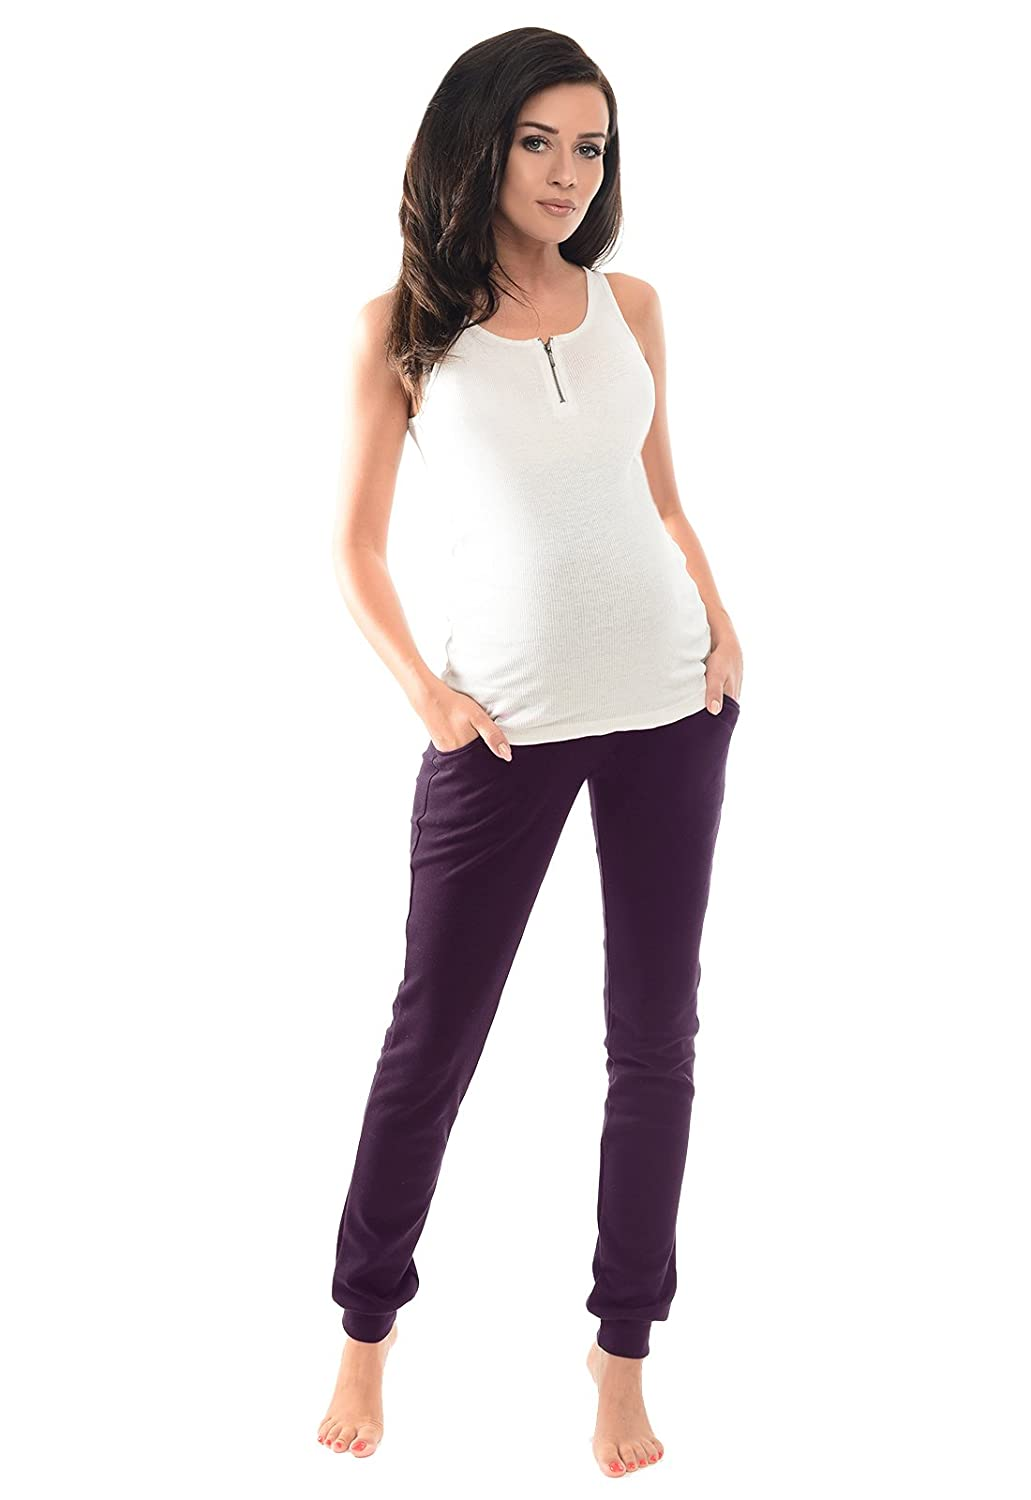 Purpless Maternity Over Bump Joggers Pregnancy Trousers Pants 1307